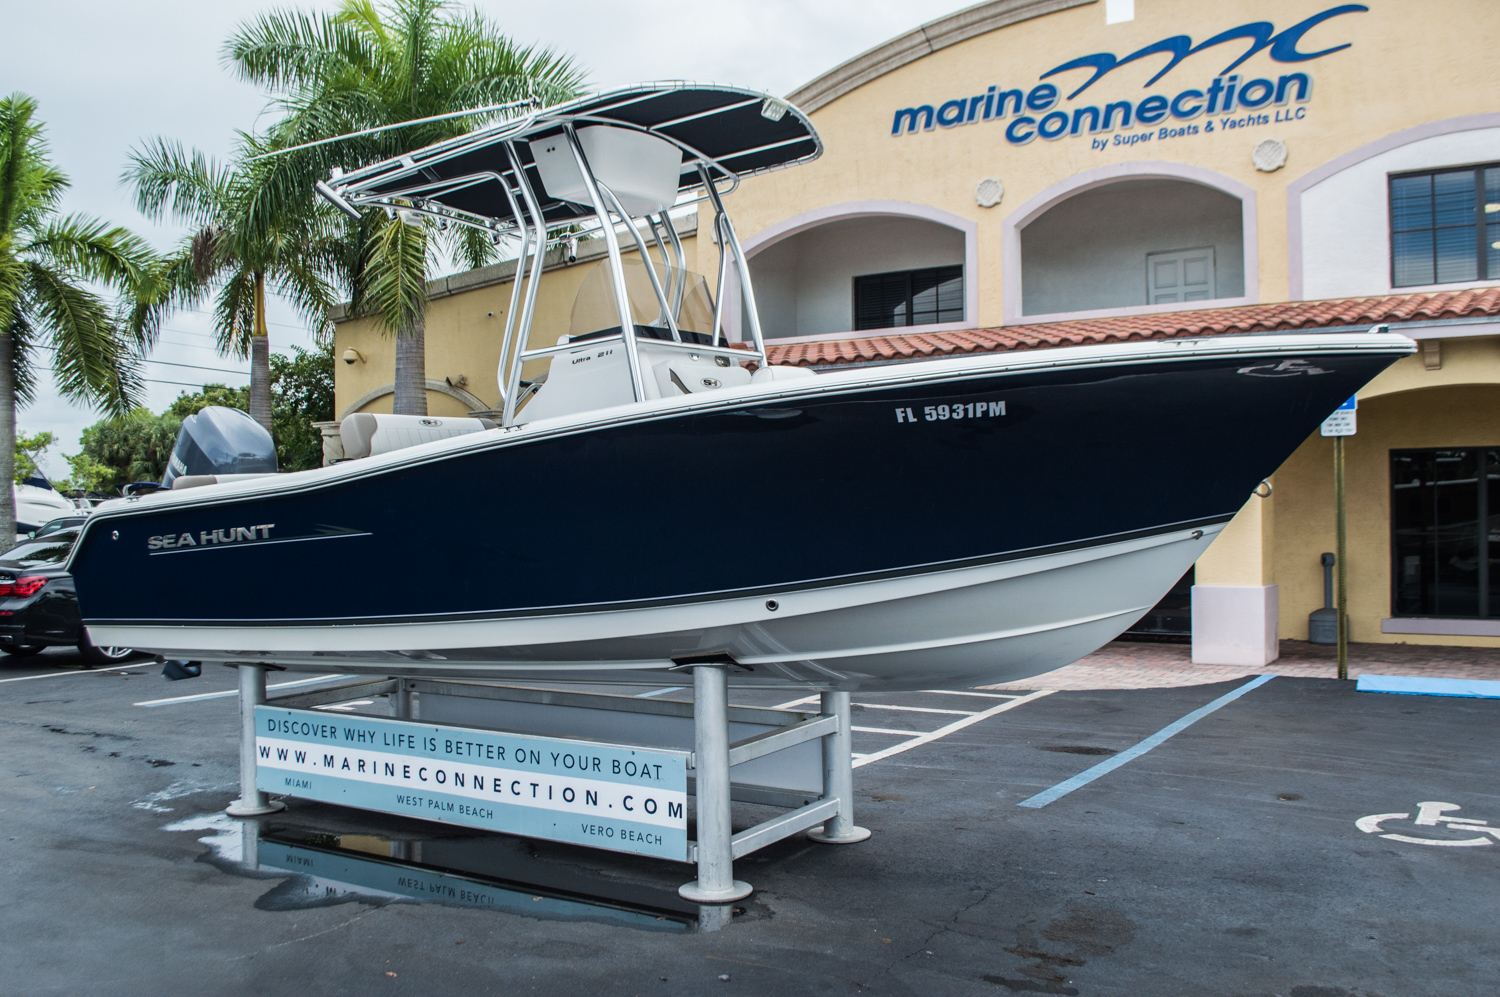 Thumbnail 1 for Used 2012 Sea Hunt 211 Ultra boat for sale in West Palm Beach, FL